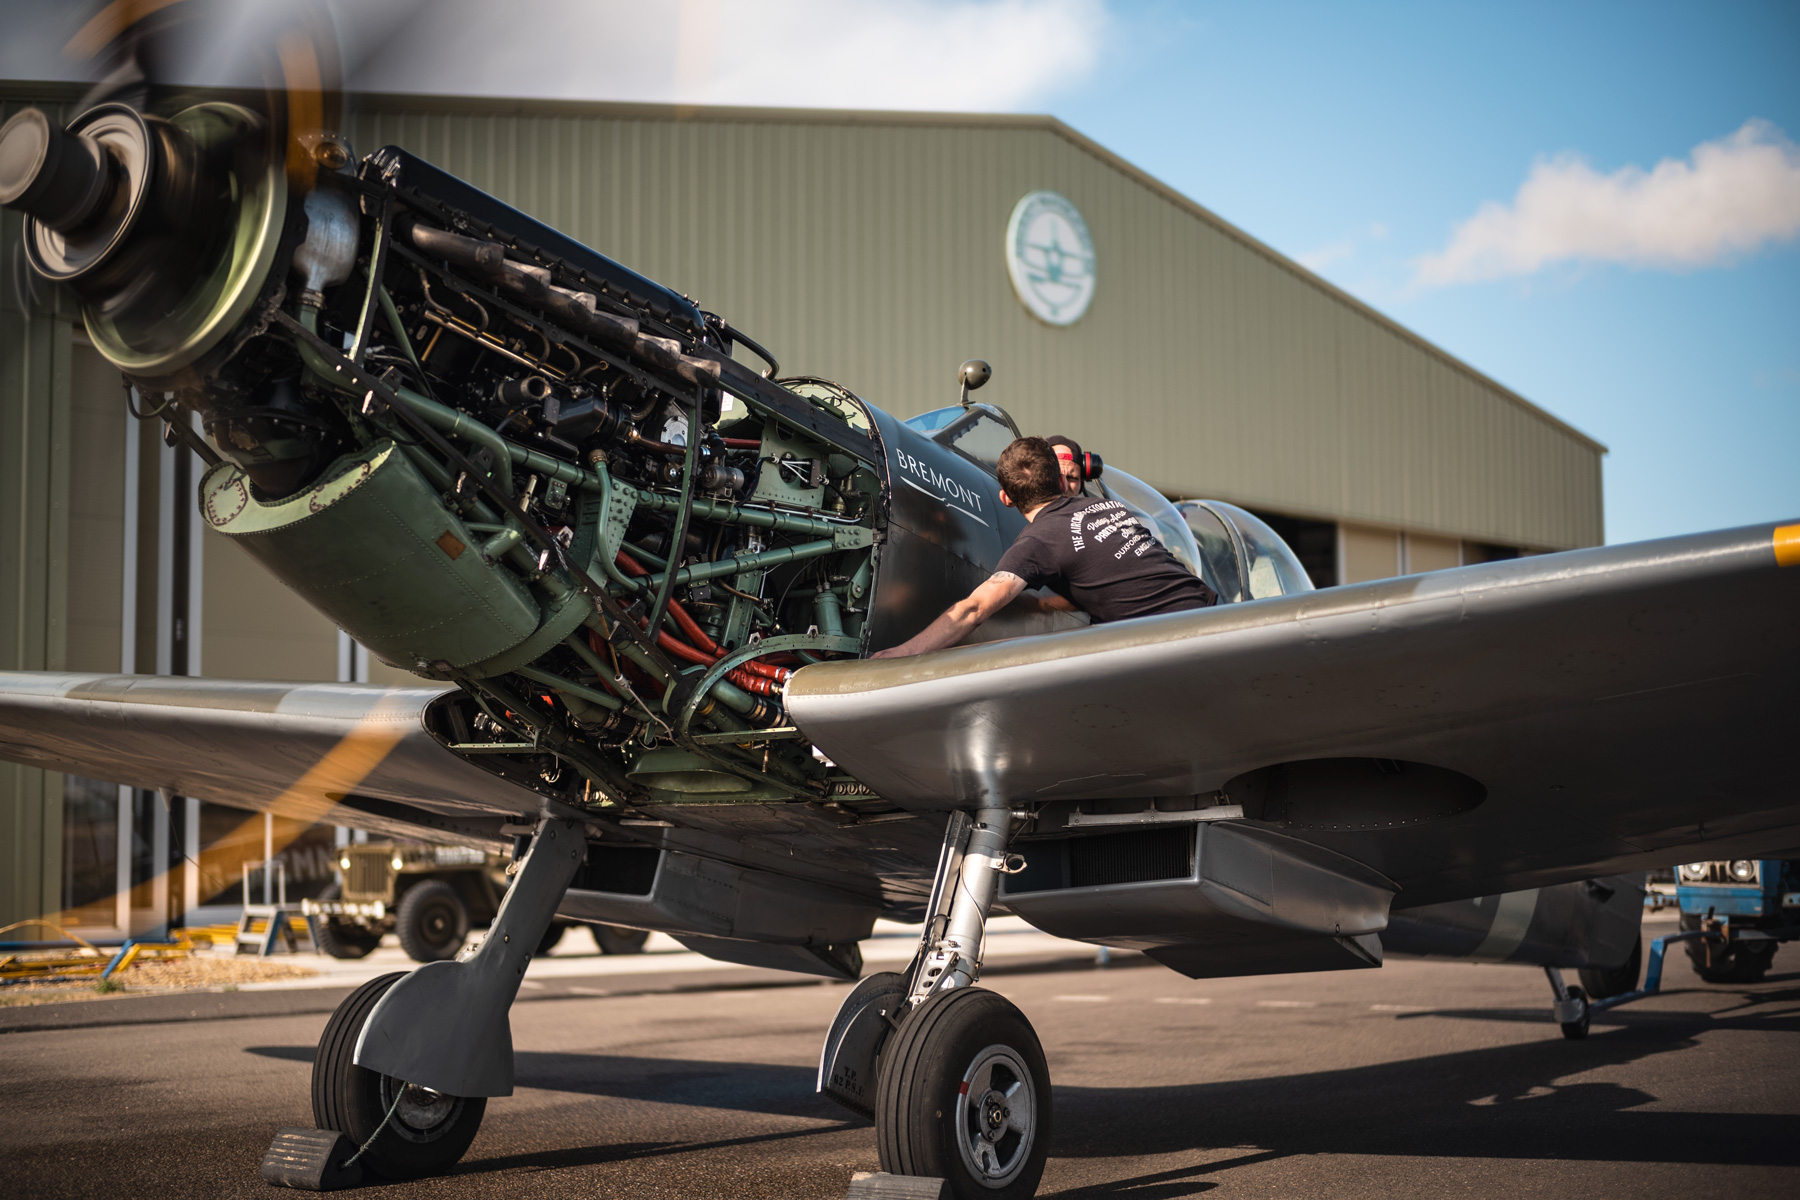 ARCo-Spitfire-PV202-Gallery_maintenance-engine-run.jpg